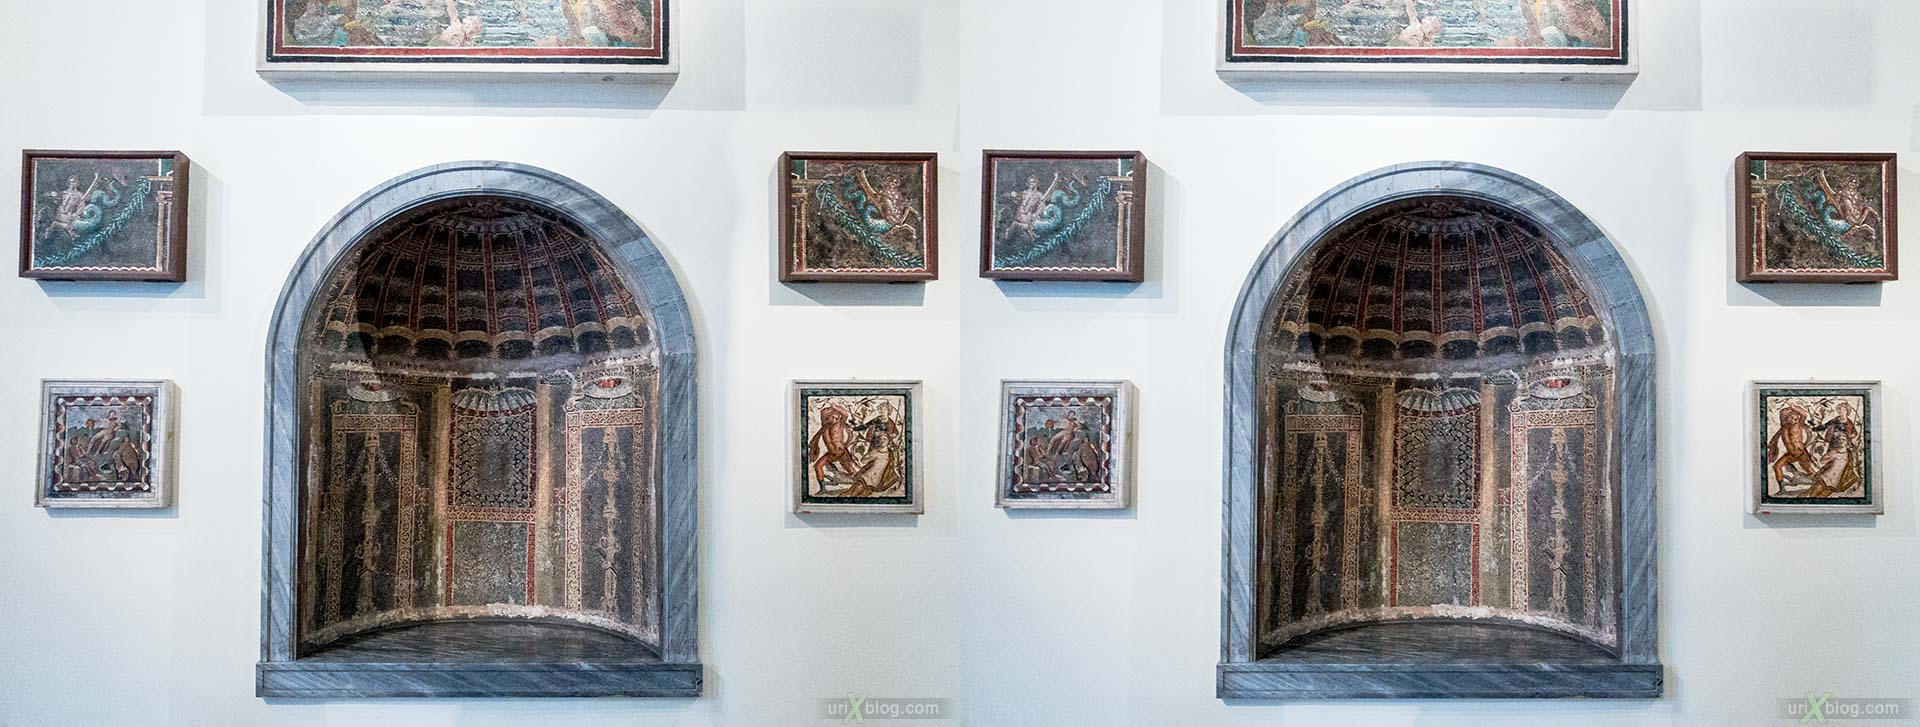 frescoes, mosaics, National Archaeological Museum of Naples, ancient Rome, Pompei, exhibition, Naples, Italy, 3D, stereo pair, cross-eyed, crossview, cross view stereo pair, stereoscopic